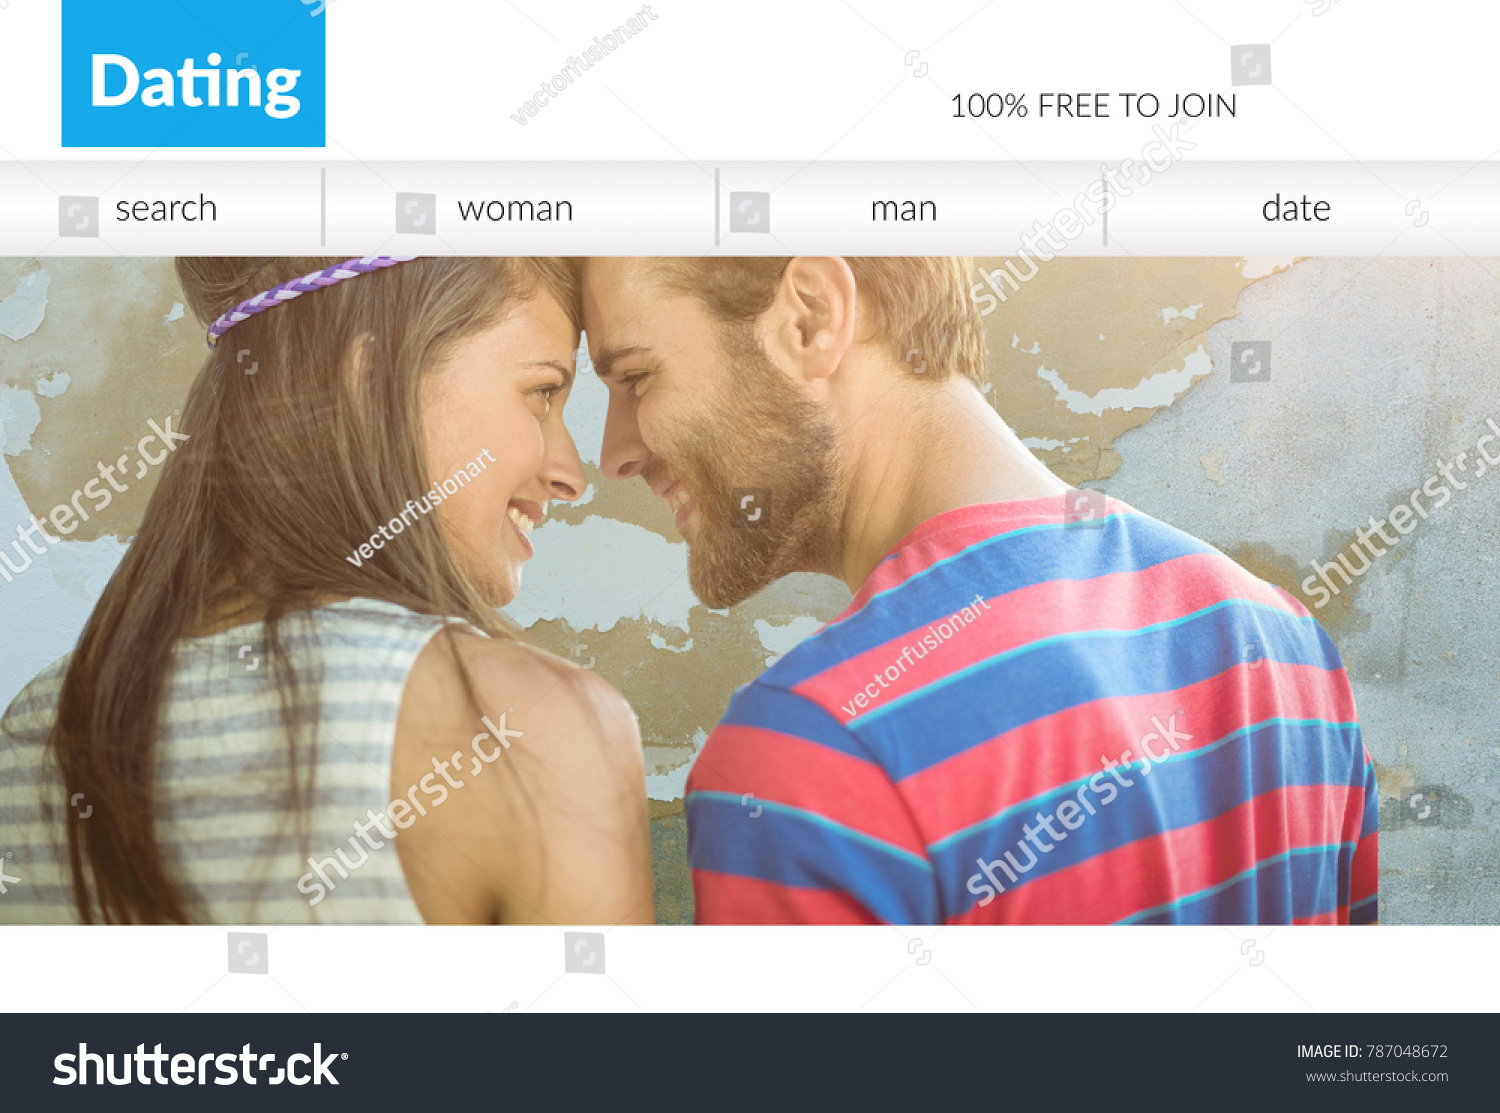 dating apps like tinder consensually